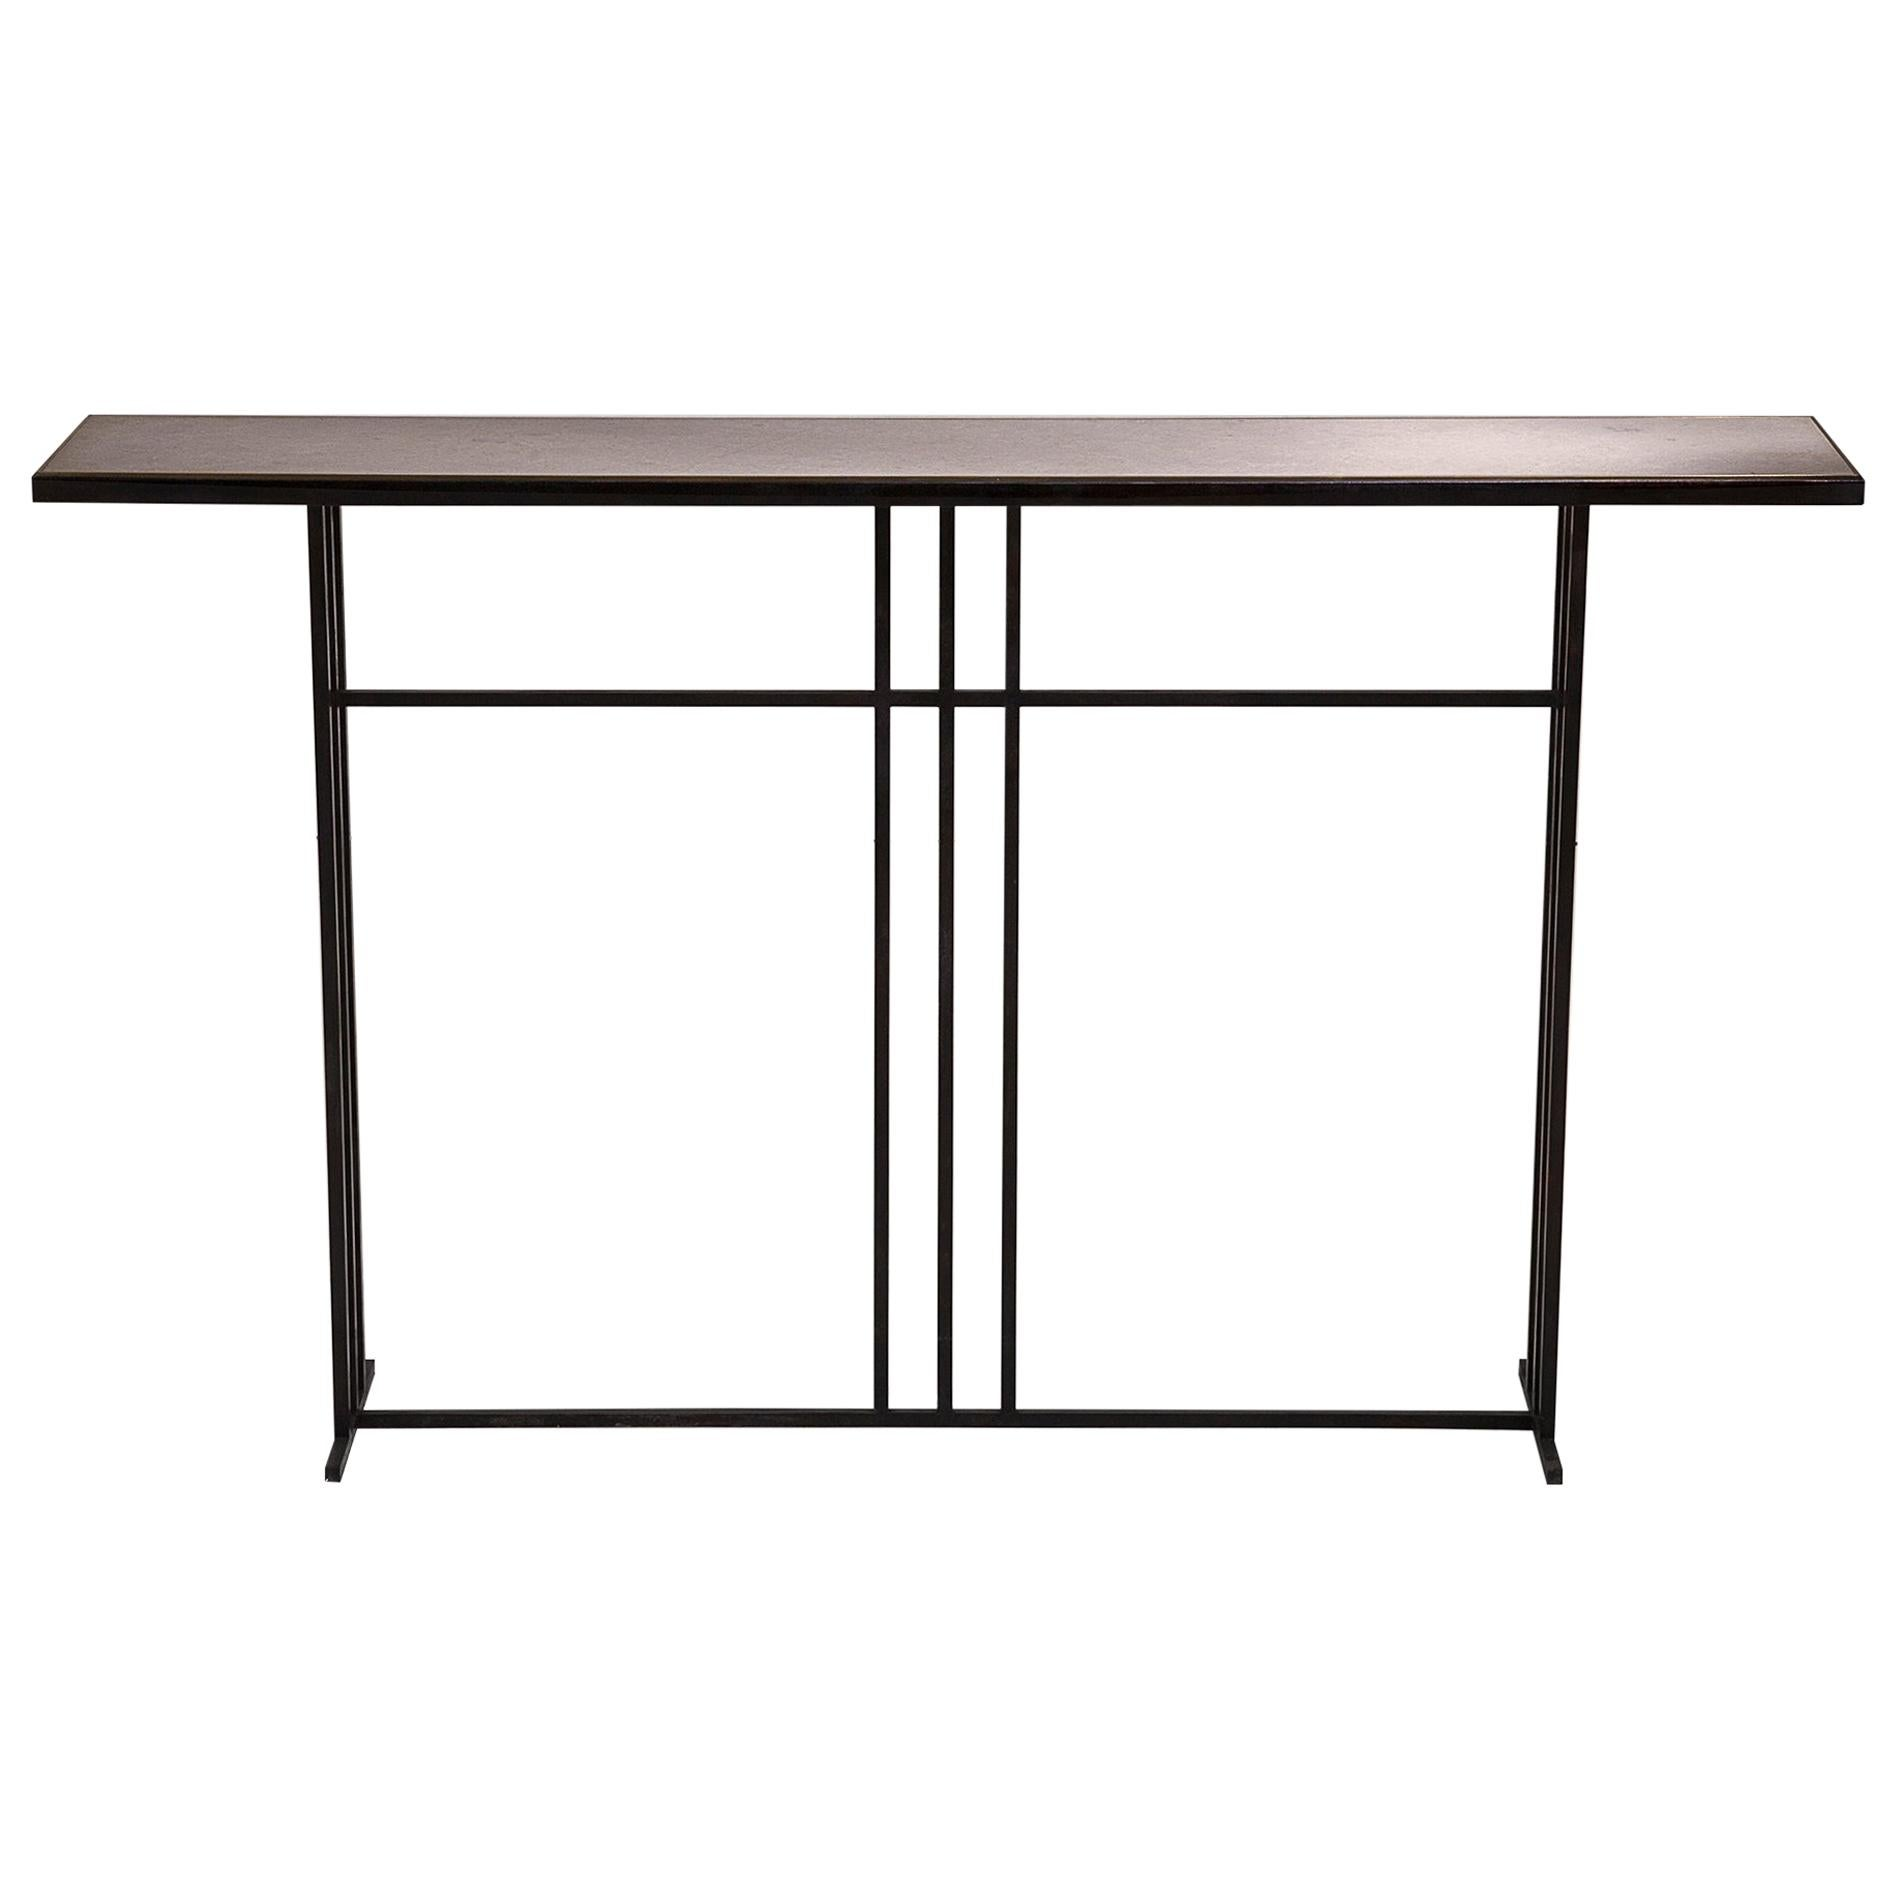 Slate and Brass Console Signed by Novocastrian